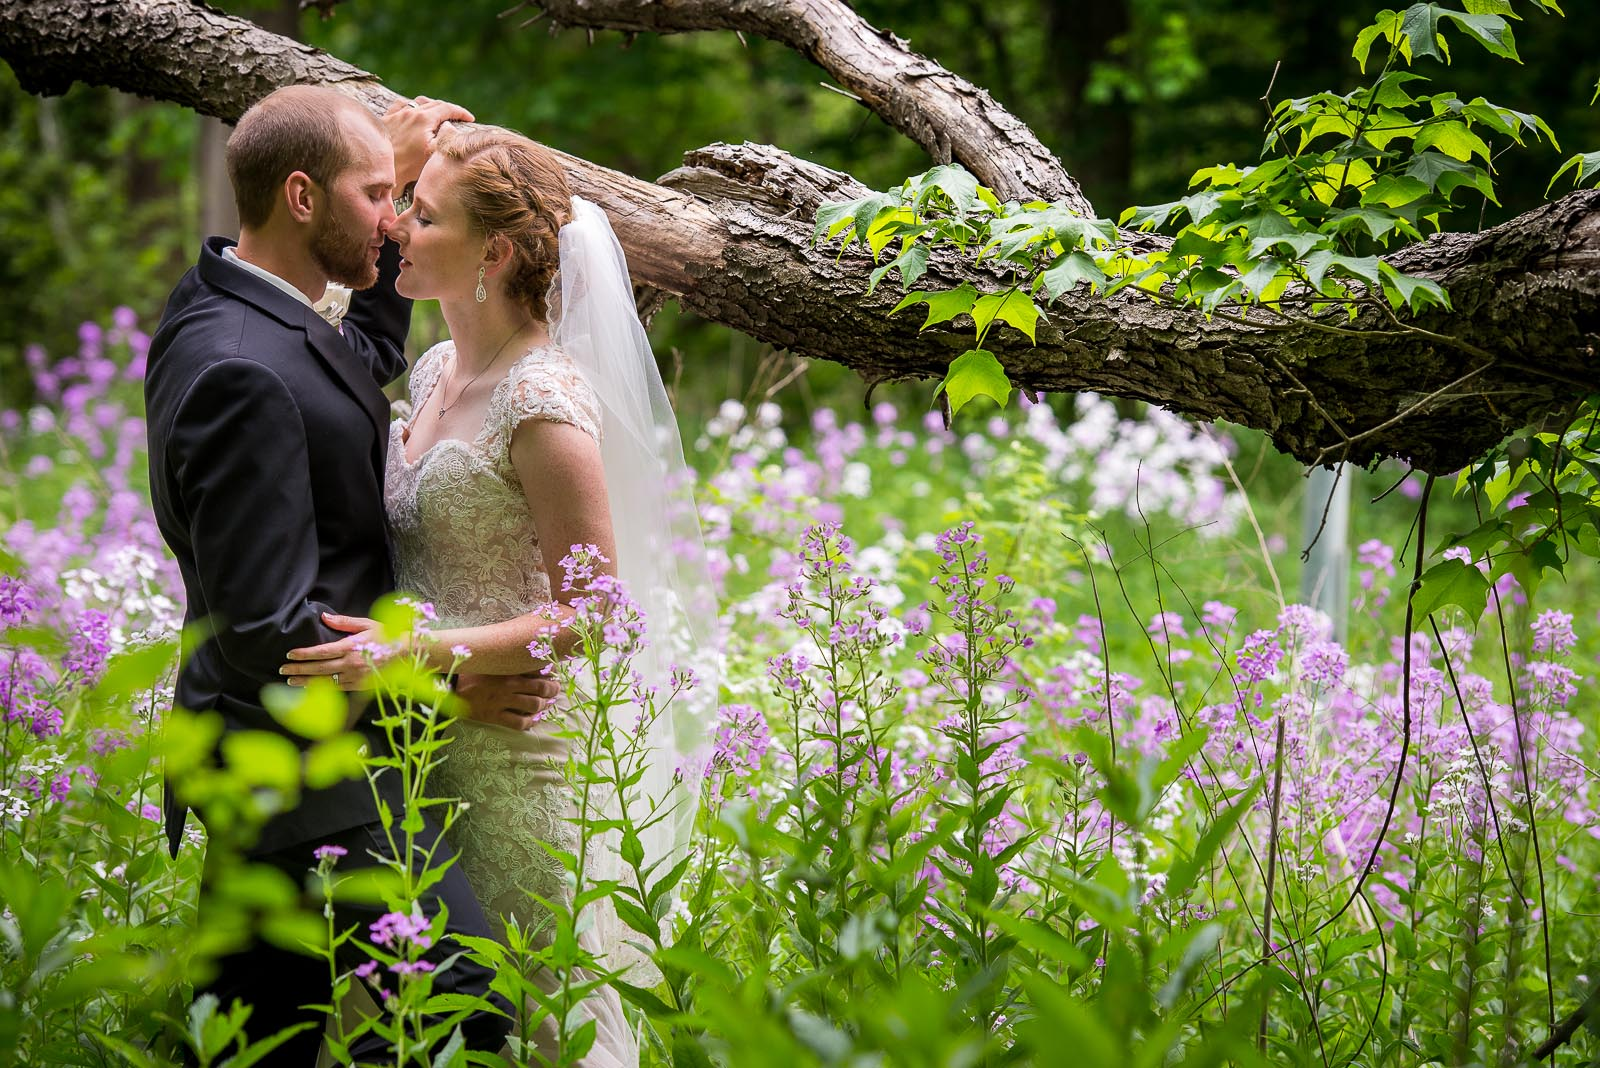 Eric_and_Christy_Photography_Blog_2016_Best_Wedding_Portraits-5